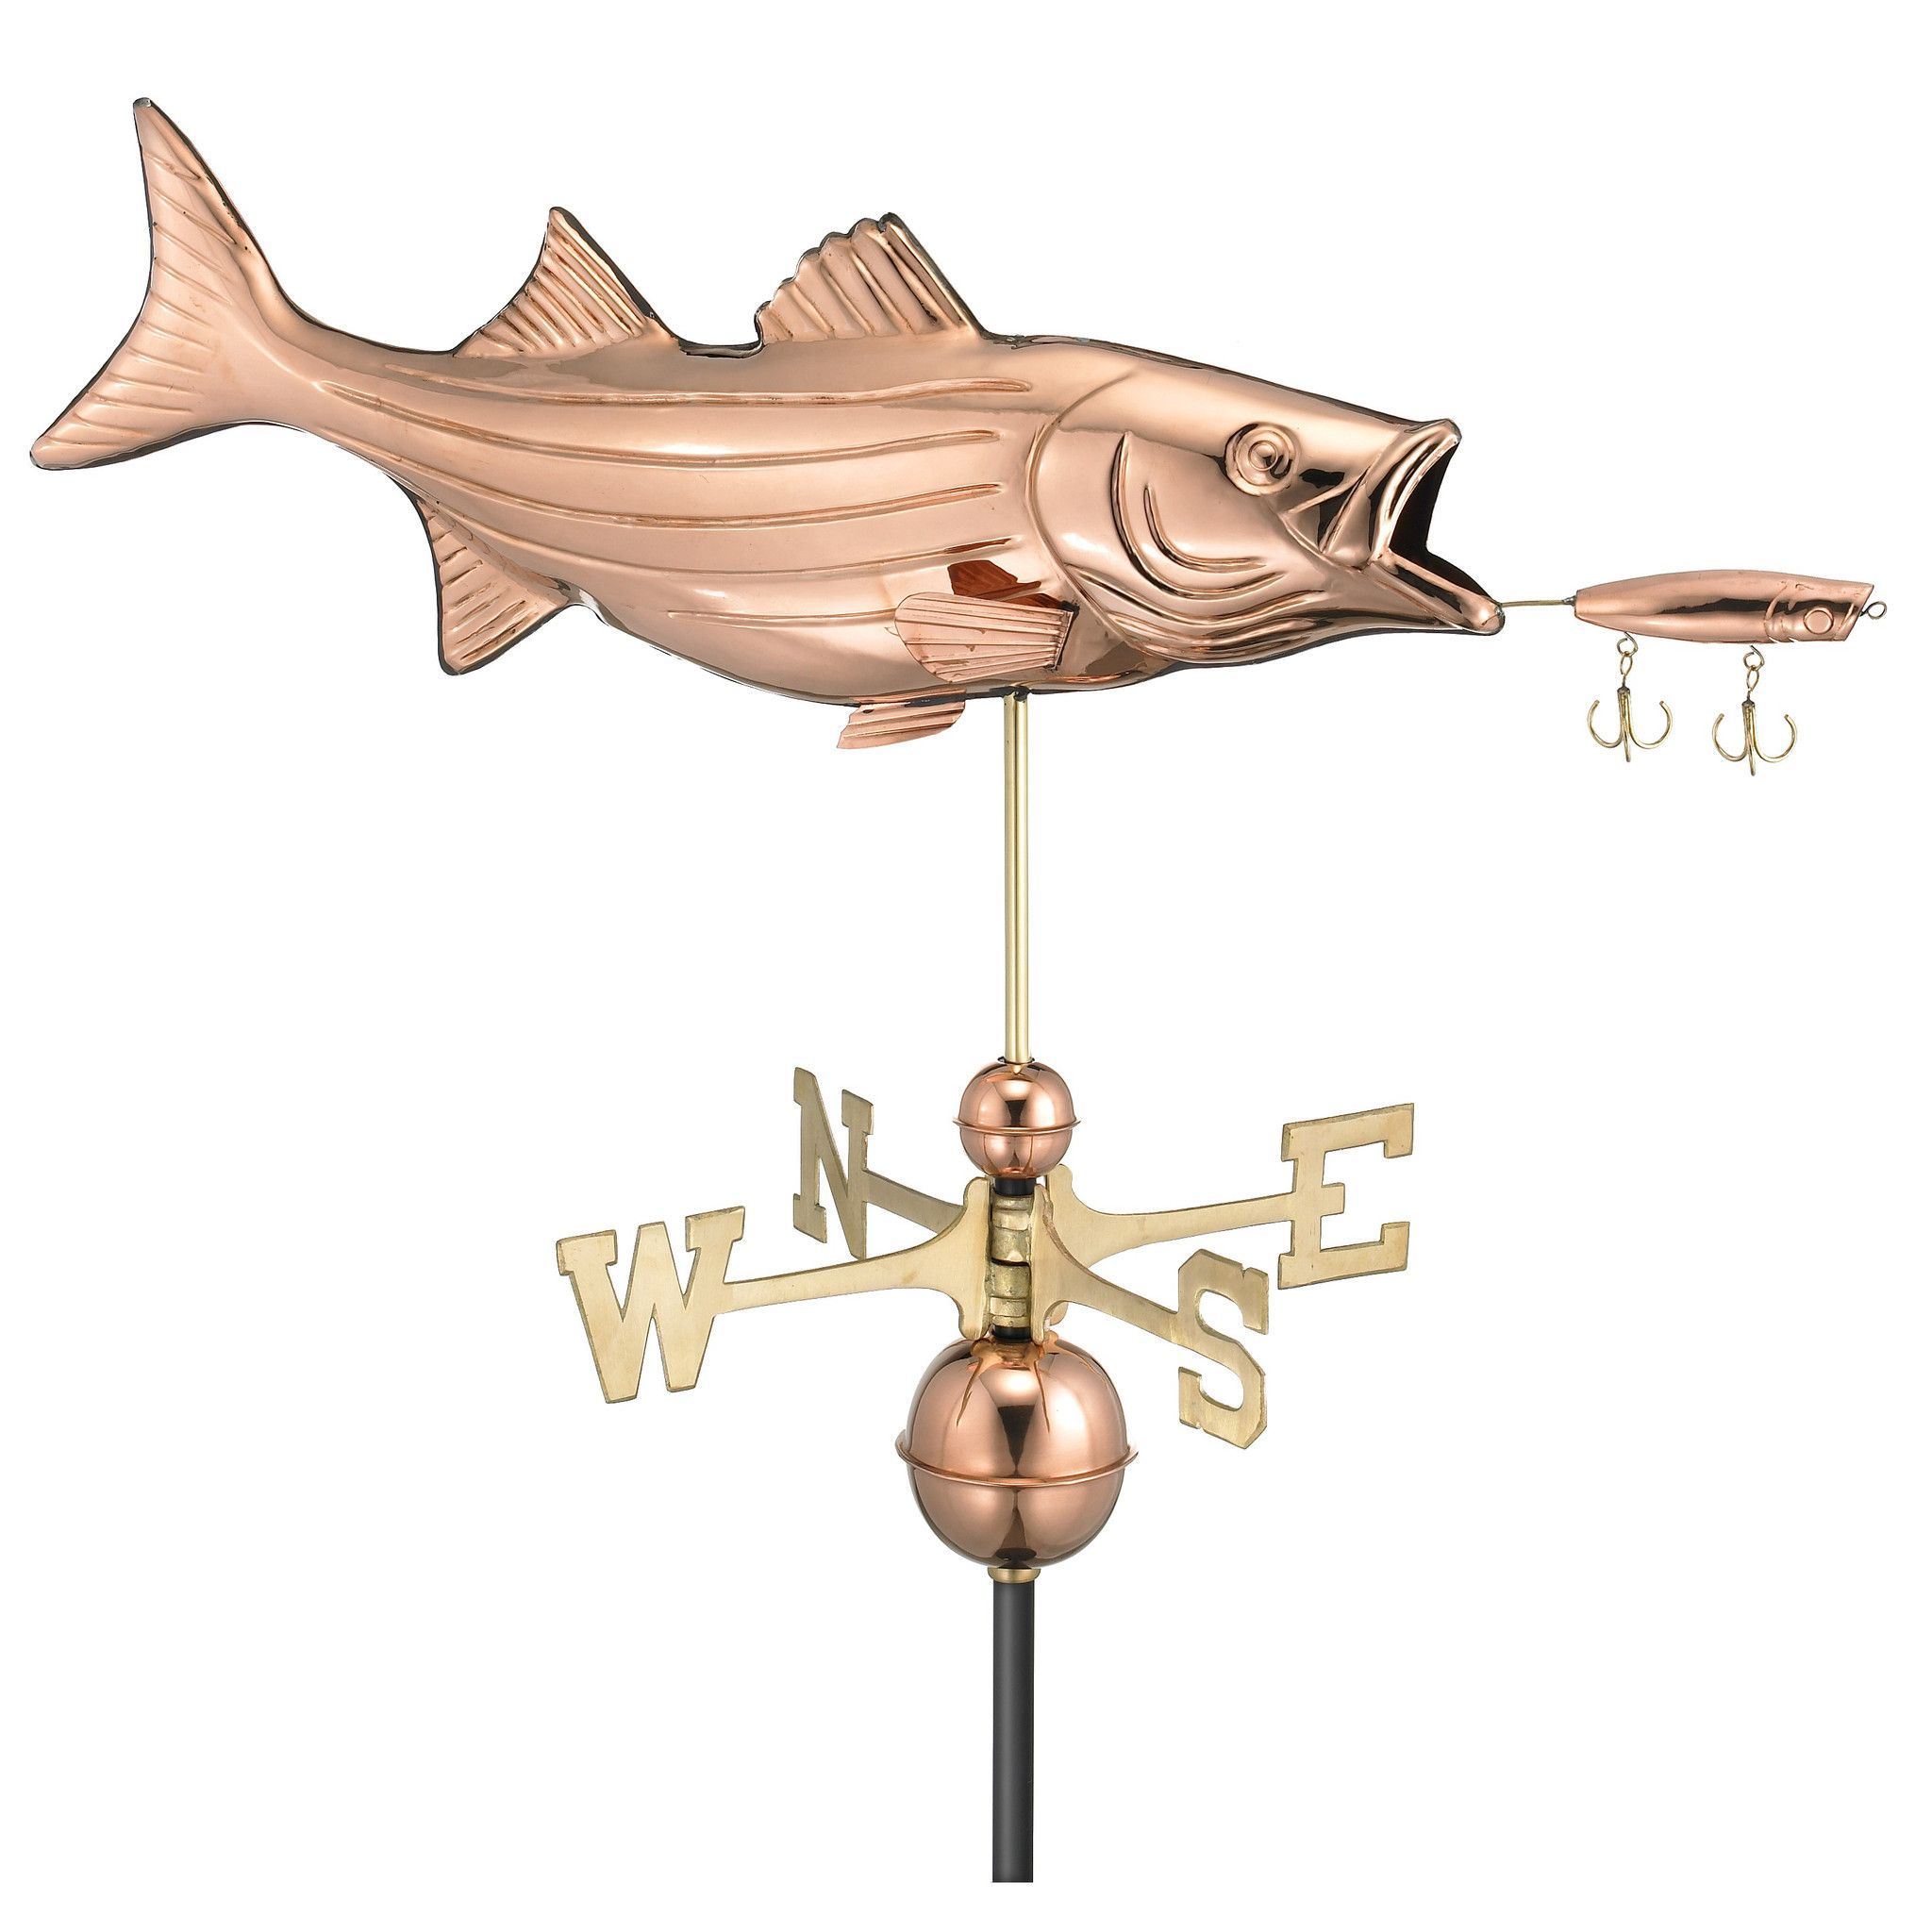 Bass with Lure Polished Copper Weathervane